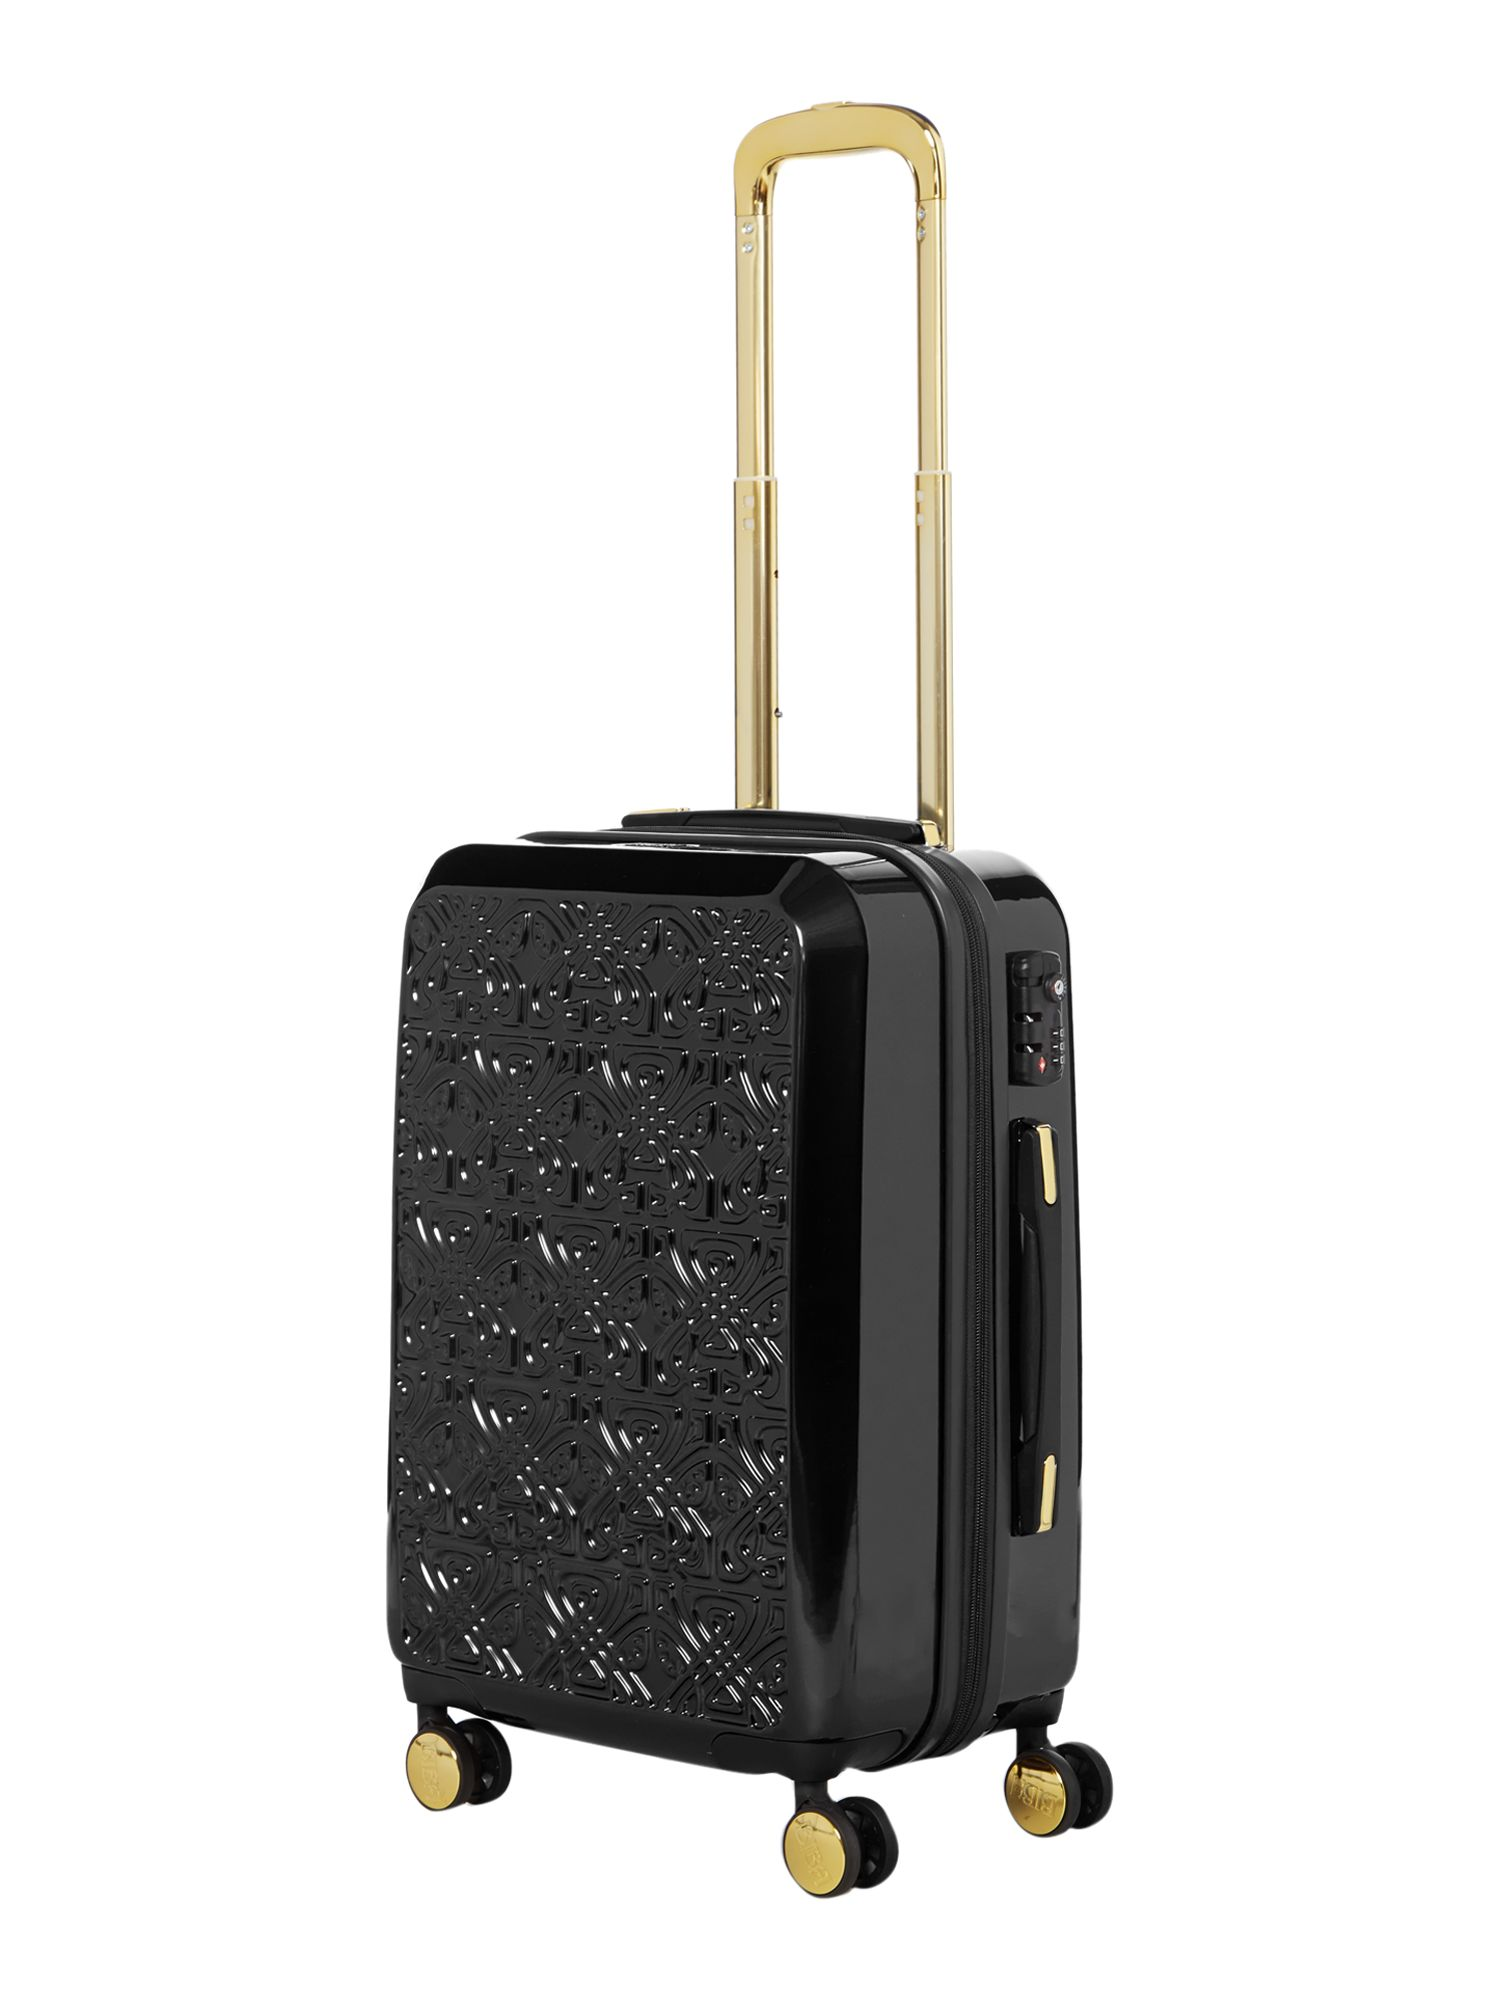 Biba Logo emboss black 8 wheel cabin suitcase Black